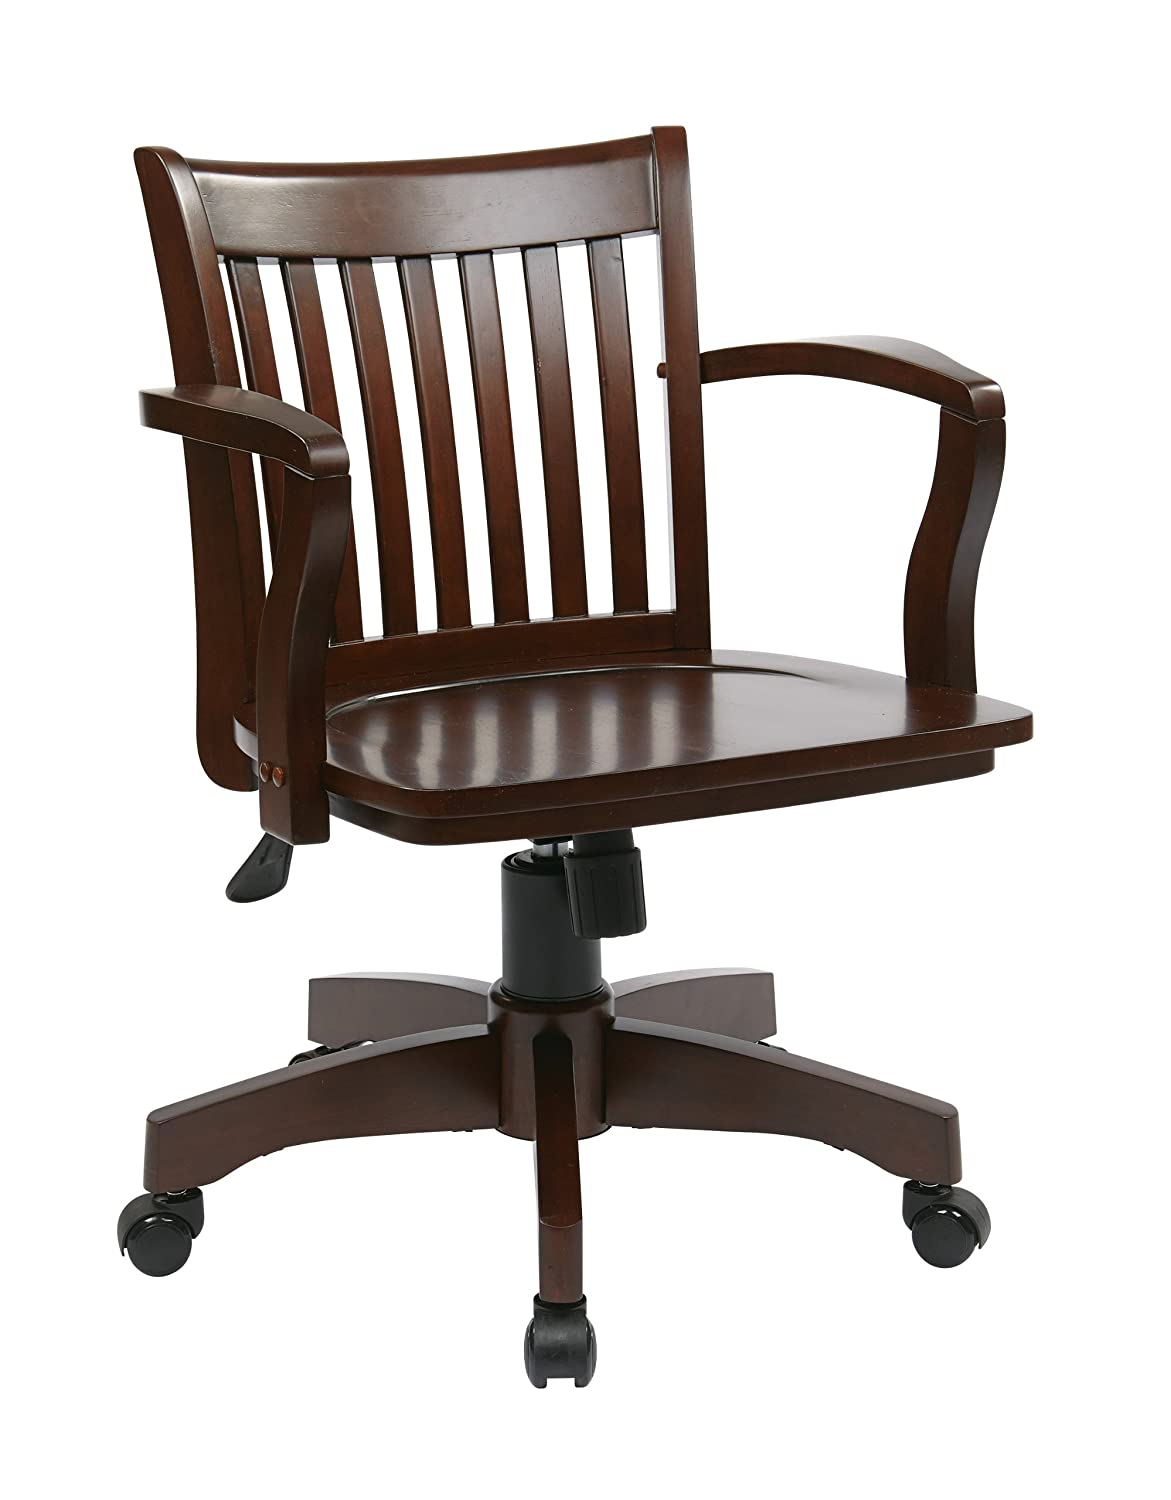 Amazon.com: Office Star Deluxe Wood Bankers Desk Chair with Wood Seat,  Fruit Wood: Kitchen & Dining - Amazon.com: Office Star Deluxe Wood Bankers Desk Chair With Wood